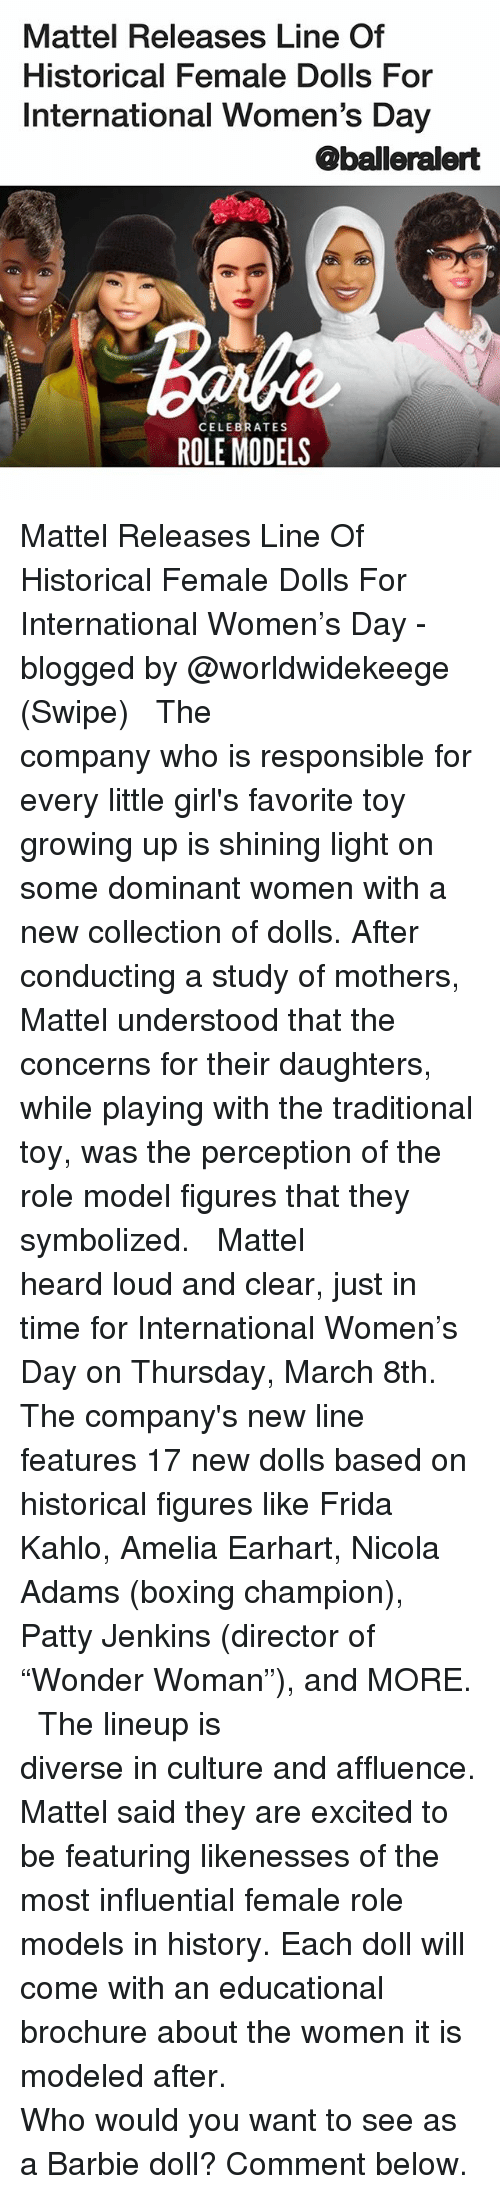 """mattel: Mattel Releases Line Of  Historical Female Dolls For  International Women's Day  @balleralert  CELEBRATES  ROLE MODELS Mattel Releases Line Of Historical Female Dolls For International Women's Day - blogged by @worldwidekeege (Swipe) ⠀⠀⠀⠀⠀⠀⠀⠀⠀ ⠀⠀⠀⠀⠀⠀⠀⠀⠀ The company who is responsible for every little girl's favorite toy growing up is shining light on some dominant women with a new collection of dolls. After conducting a study of mothers, Mattel understood that the concerns for their daughters, while playing with the traditional toy, was the perception of the role model figures that they symbolized. ⠀⠀⠀⠀⠀⠀⠀⠀⠀ ⠀⠀⠀⠀⠀⠀⠀⠀⠀ Mattel heard loud and clear, just in time for International Women's Day on Thursday, March 8th. The company's new line features 17 new dolls based on historical figures like Frida Kahlo, Amelia Earhart, Nicola Adams (boxing champion), Patty Jenkins (director of """"Wonder Woman""""), and MORE. ⠀⠀⠀⠀⠀⠀⠀⠀⠀ ⠀⠀⠀⠀⠀⠀⠀⠀⠀ The lineup is diverse in culture and affluence. Mattel said they are excited to be featuring likenesses of the most influential female role models in history. Each doll will come with an educational brochure about the women it is modeled after. ⠀⠀⠀⠀⠀⠀⠀⠀⠀ ⠀⠀⠀⠀⠀⠀⠀⠀⠀ Who would you want to see as a Barbie doll? Comment below."""